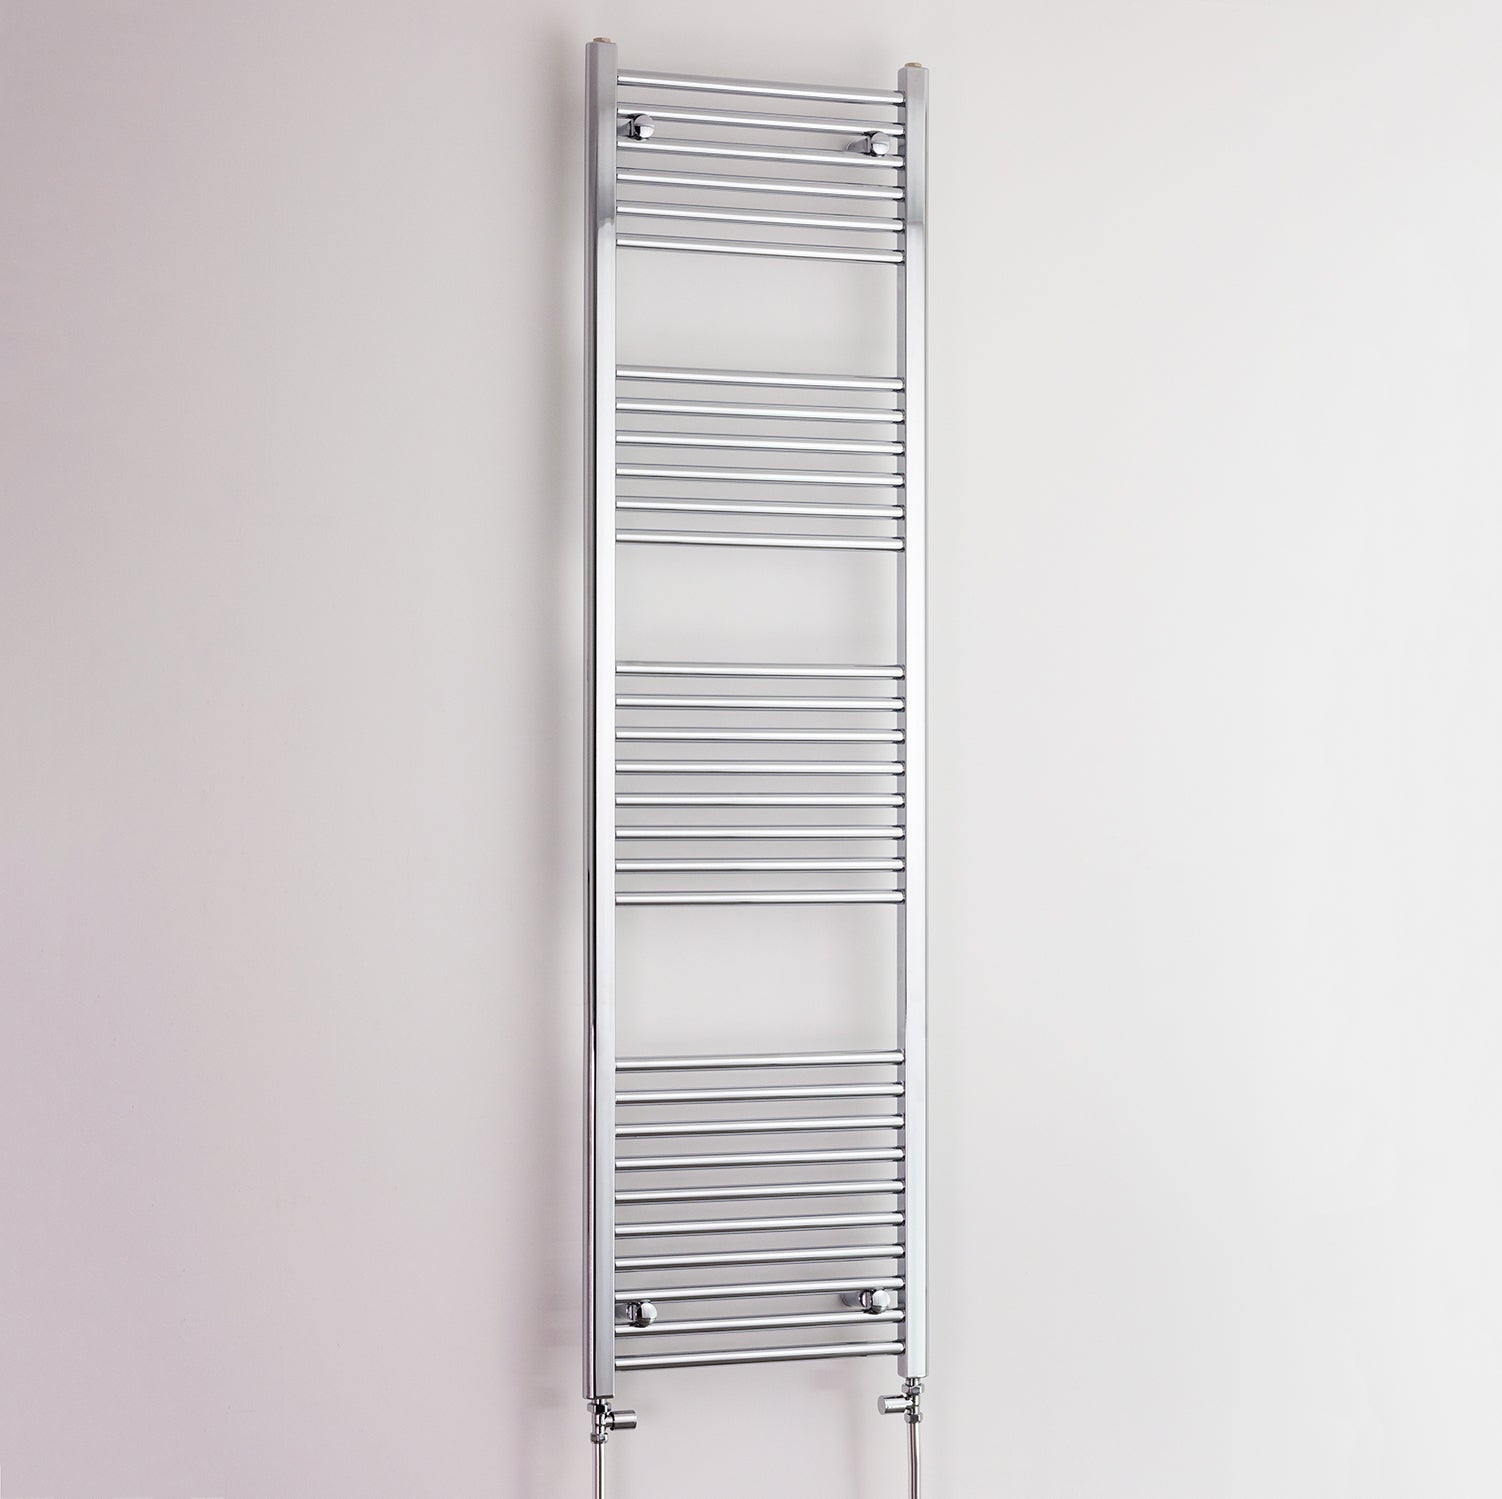 600mm Wide 1800mm High Flat Chrome Heated Towel Rail Radiator HTR,With Straight Valve